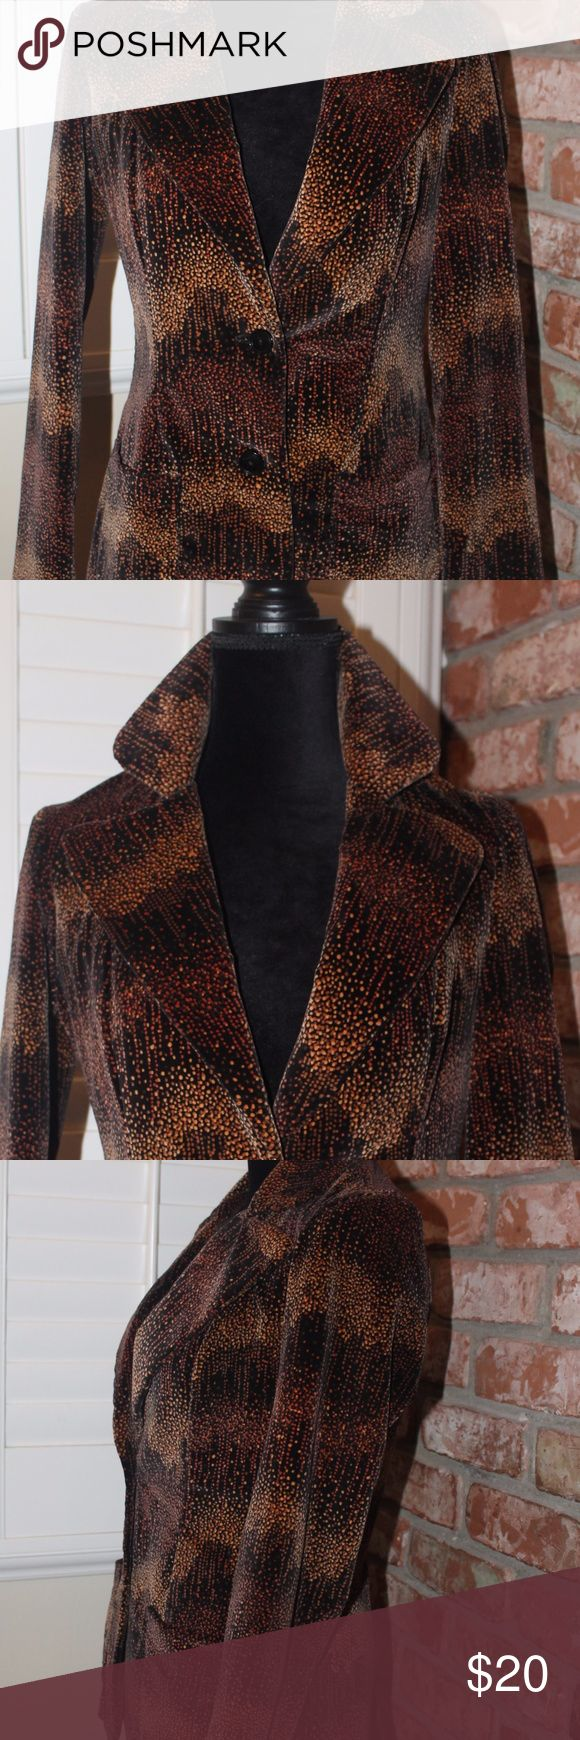 Absolutely Fabulous Vintage Alison Robert Jacket This is such a great jacket!  It is velvet on the outside, satin on the inside (see pics) I love the pattern -It reminds me of fireworks coming down or champagne bubbles?! Either way, I love this jacket and someone needs to wear it again - it has so much life left!  Great condition!! Tag says Size 10 but I think it fits more like an 8 (I can get specific measurements if needed).  I am happy to answer any questions! Alison Roberts Jackets…